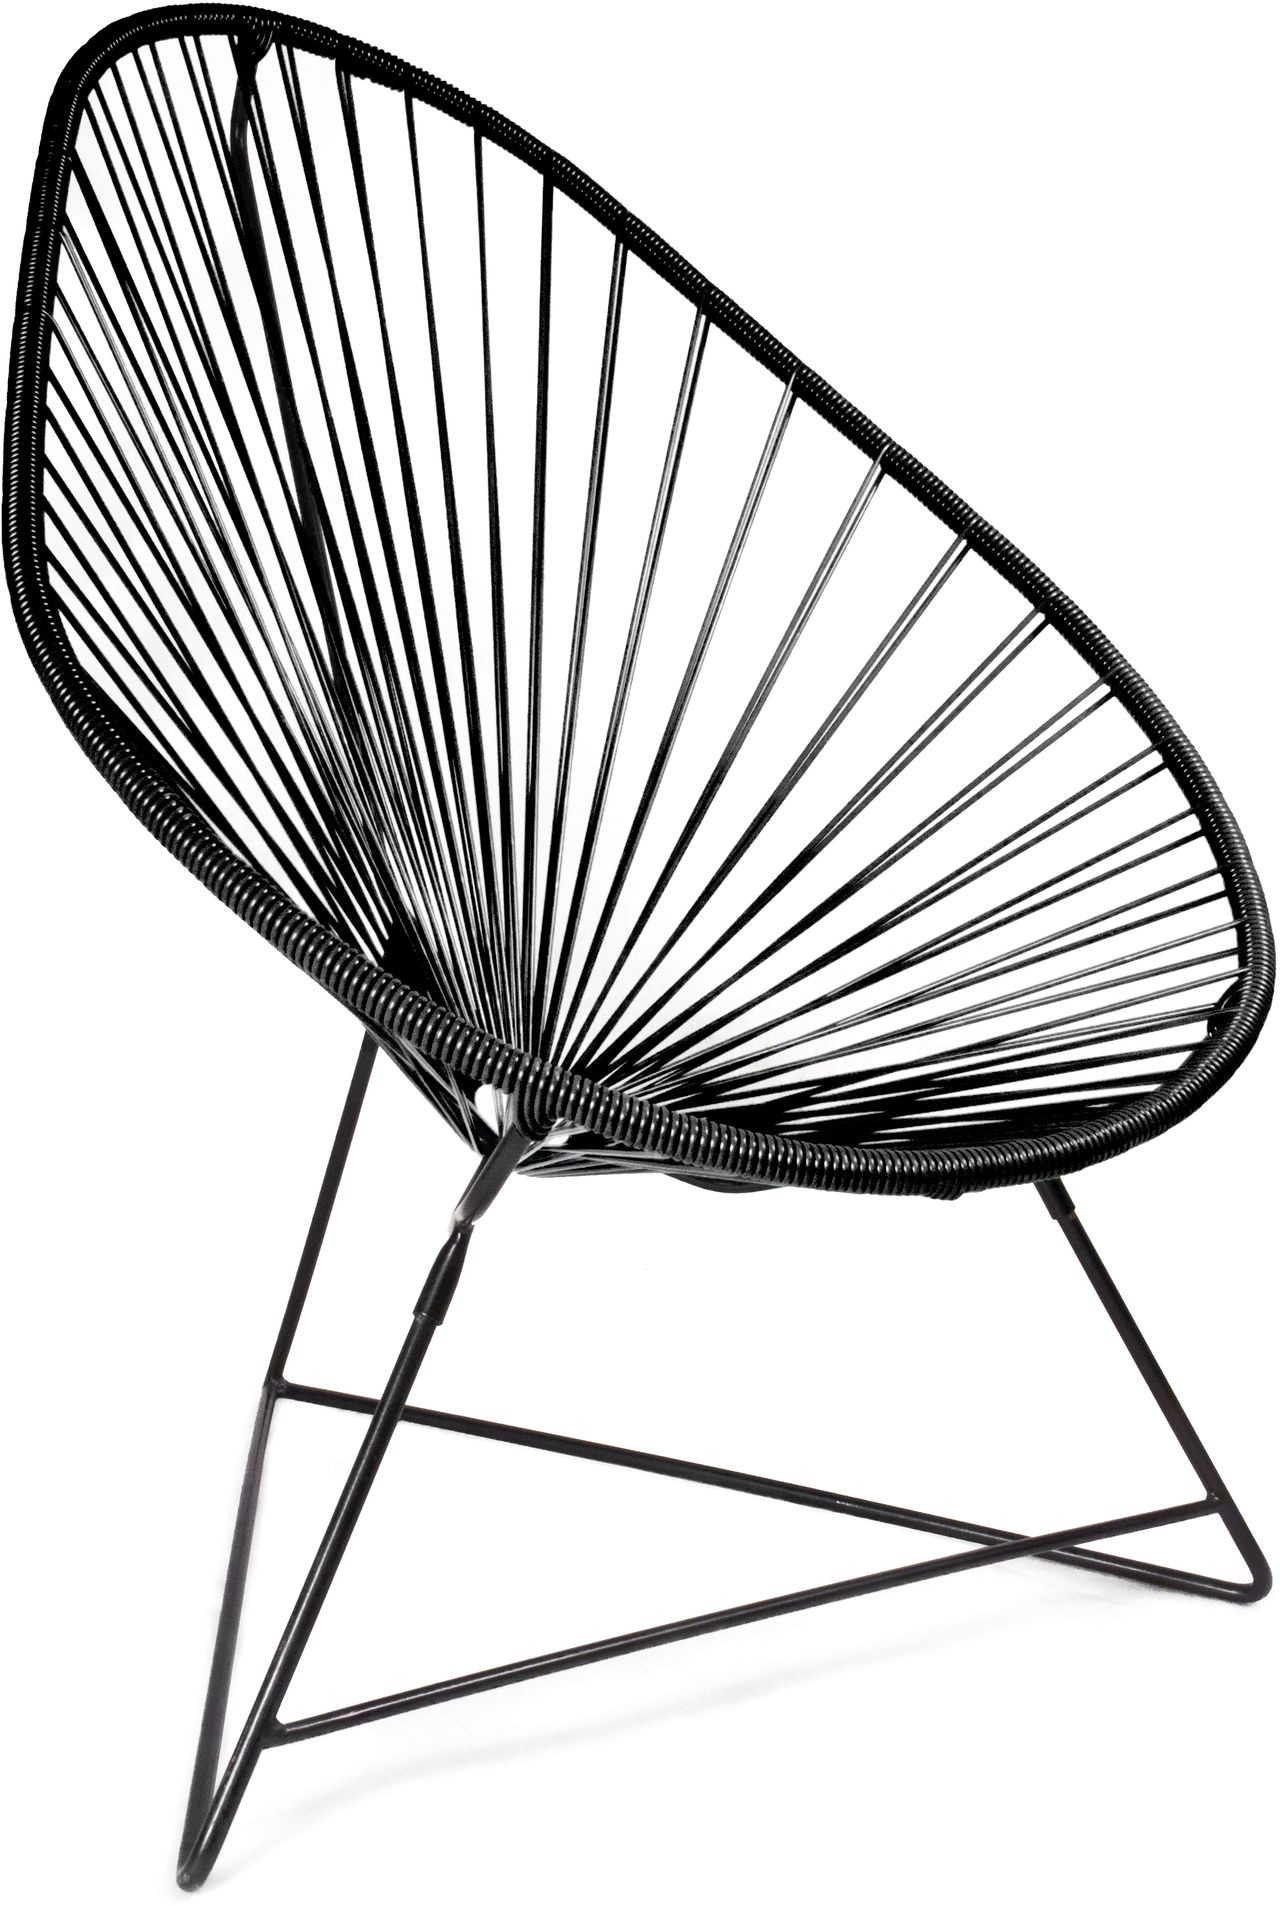 Sessel Stillen Acapulco Chair Boqa Design-sessel - Kleine Fabriek